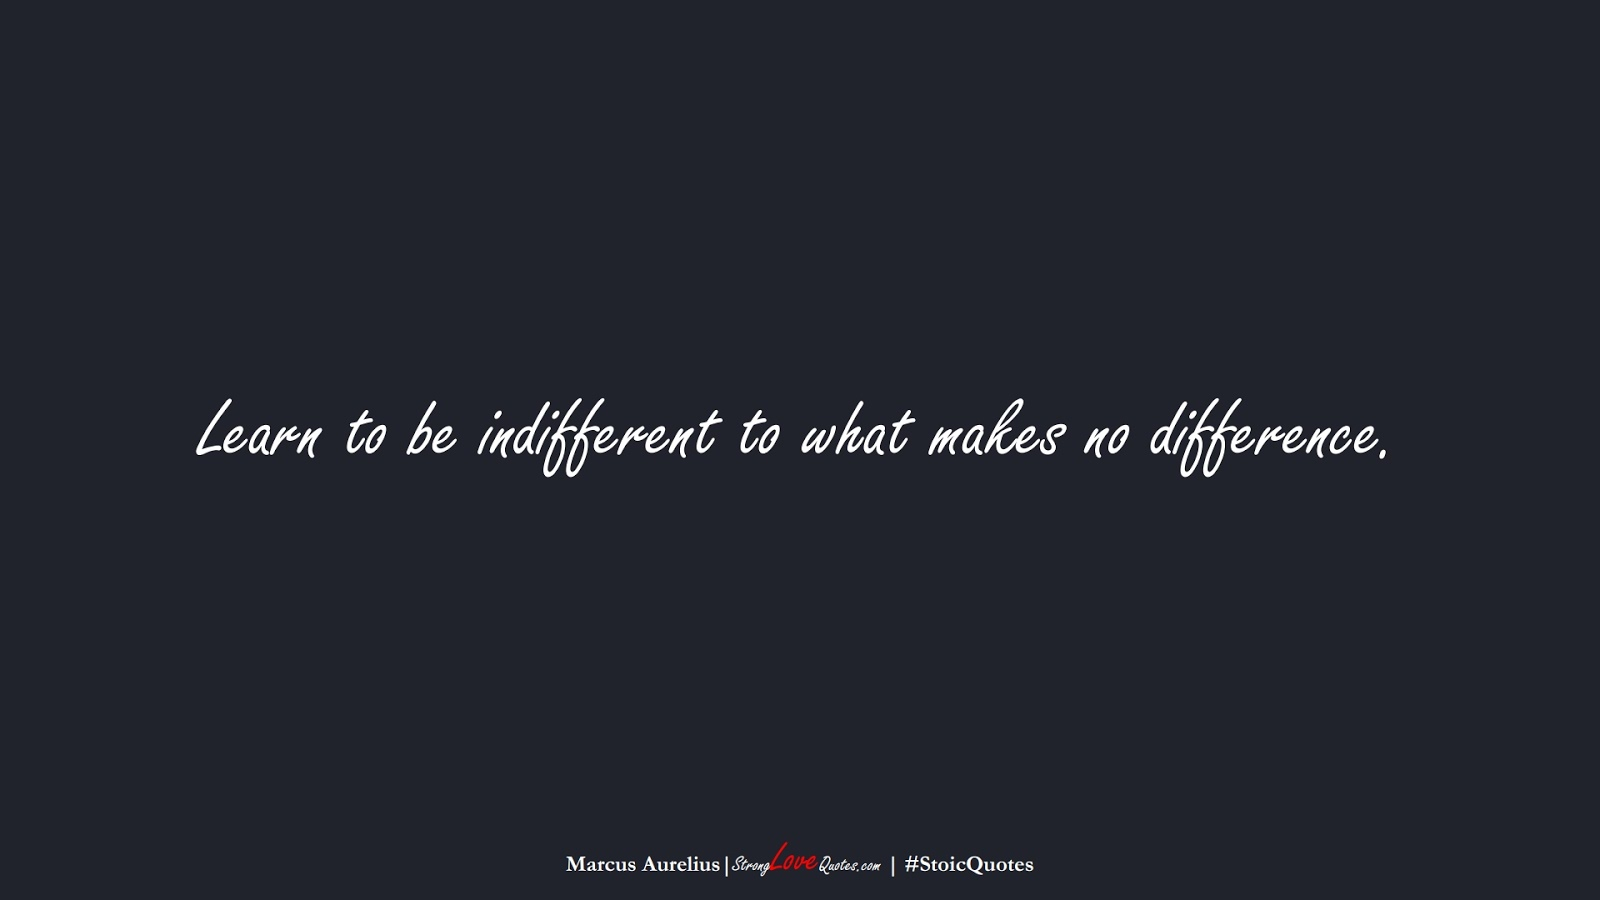 Learn to be indifferent to what makes no difference. (Marcus Aurelius);  #StoicQuotes